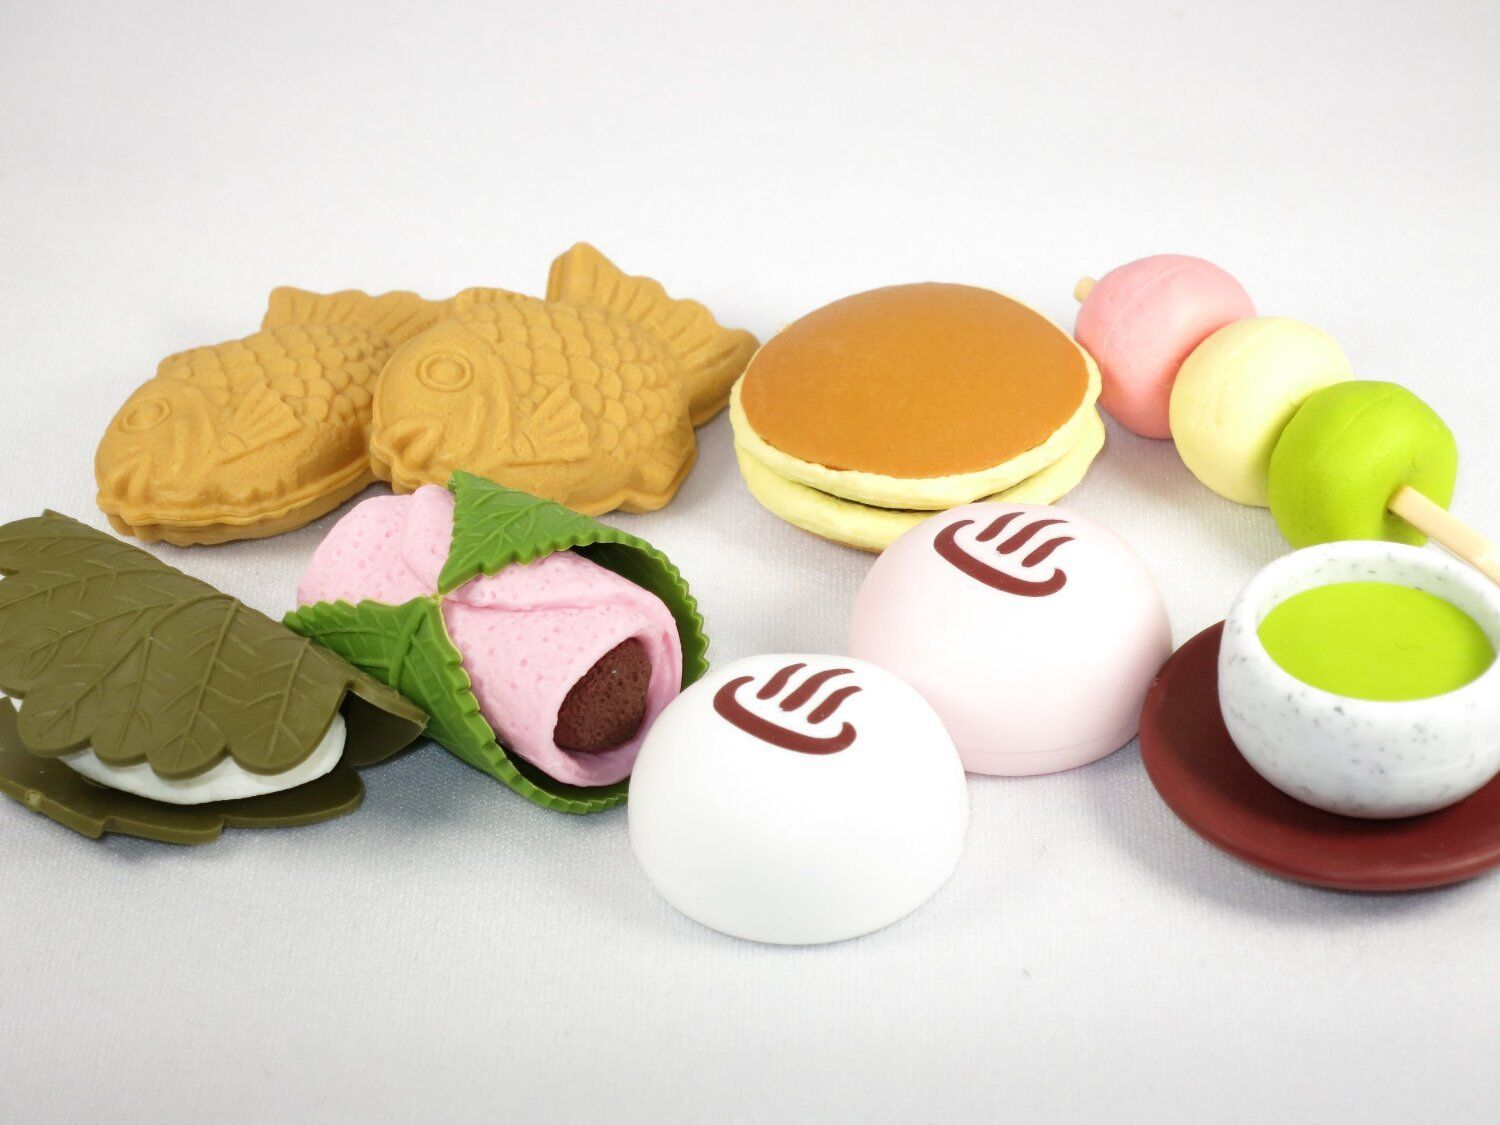 IWAKO Puzzle Eraser   Japanese Sweets 60pcs (9 Coloreees)   Made in Japan